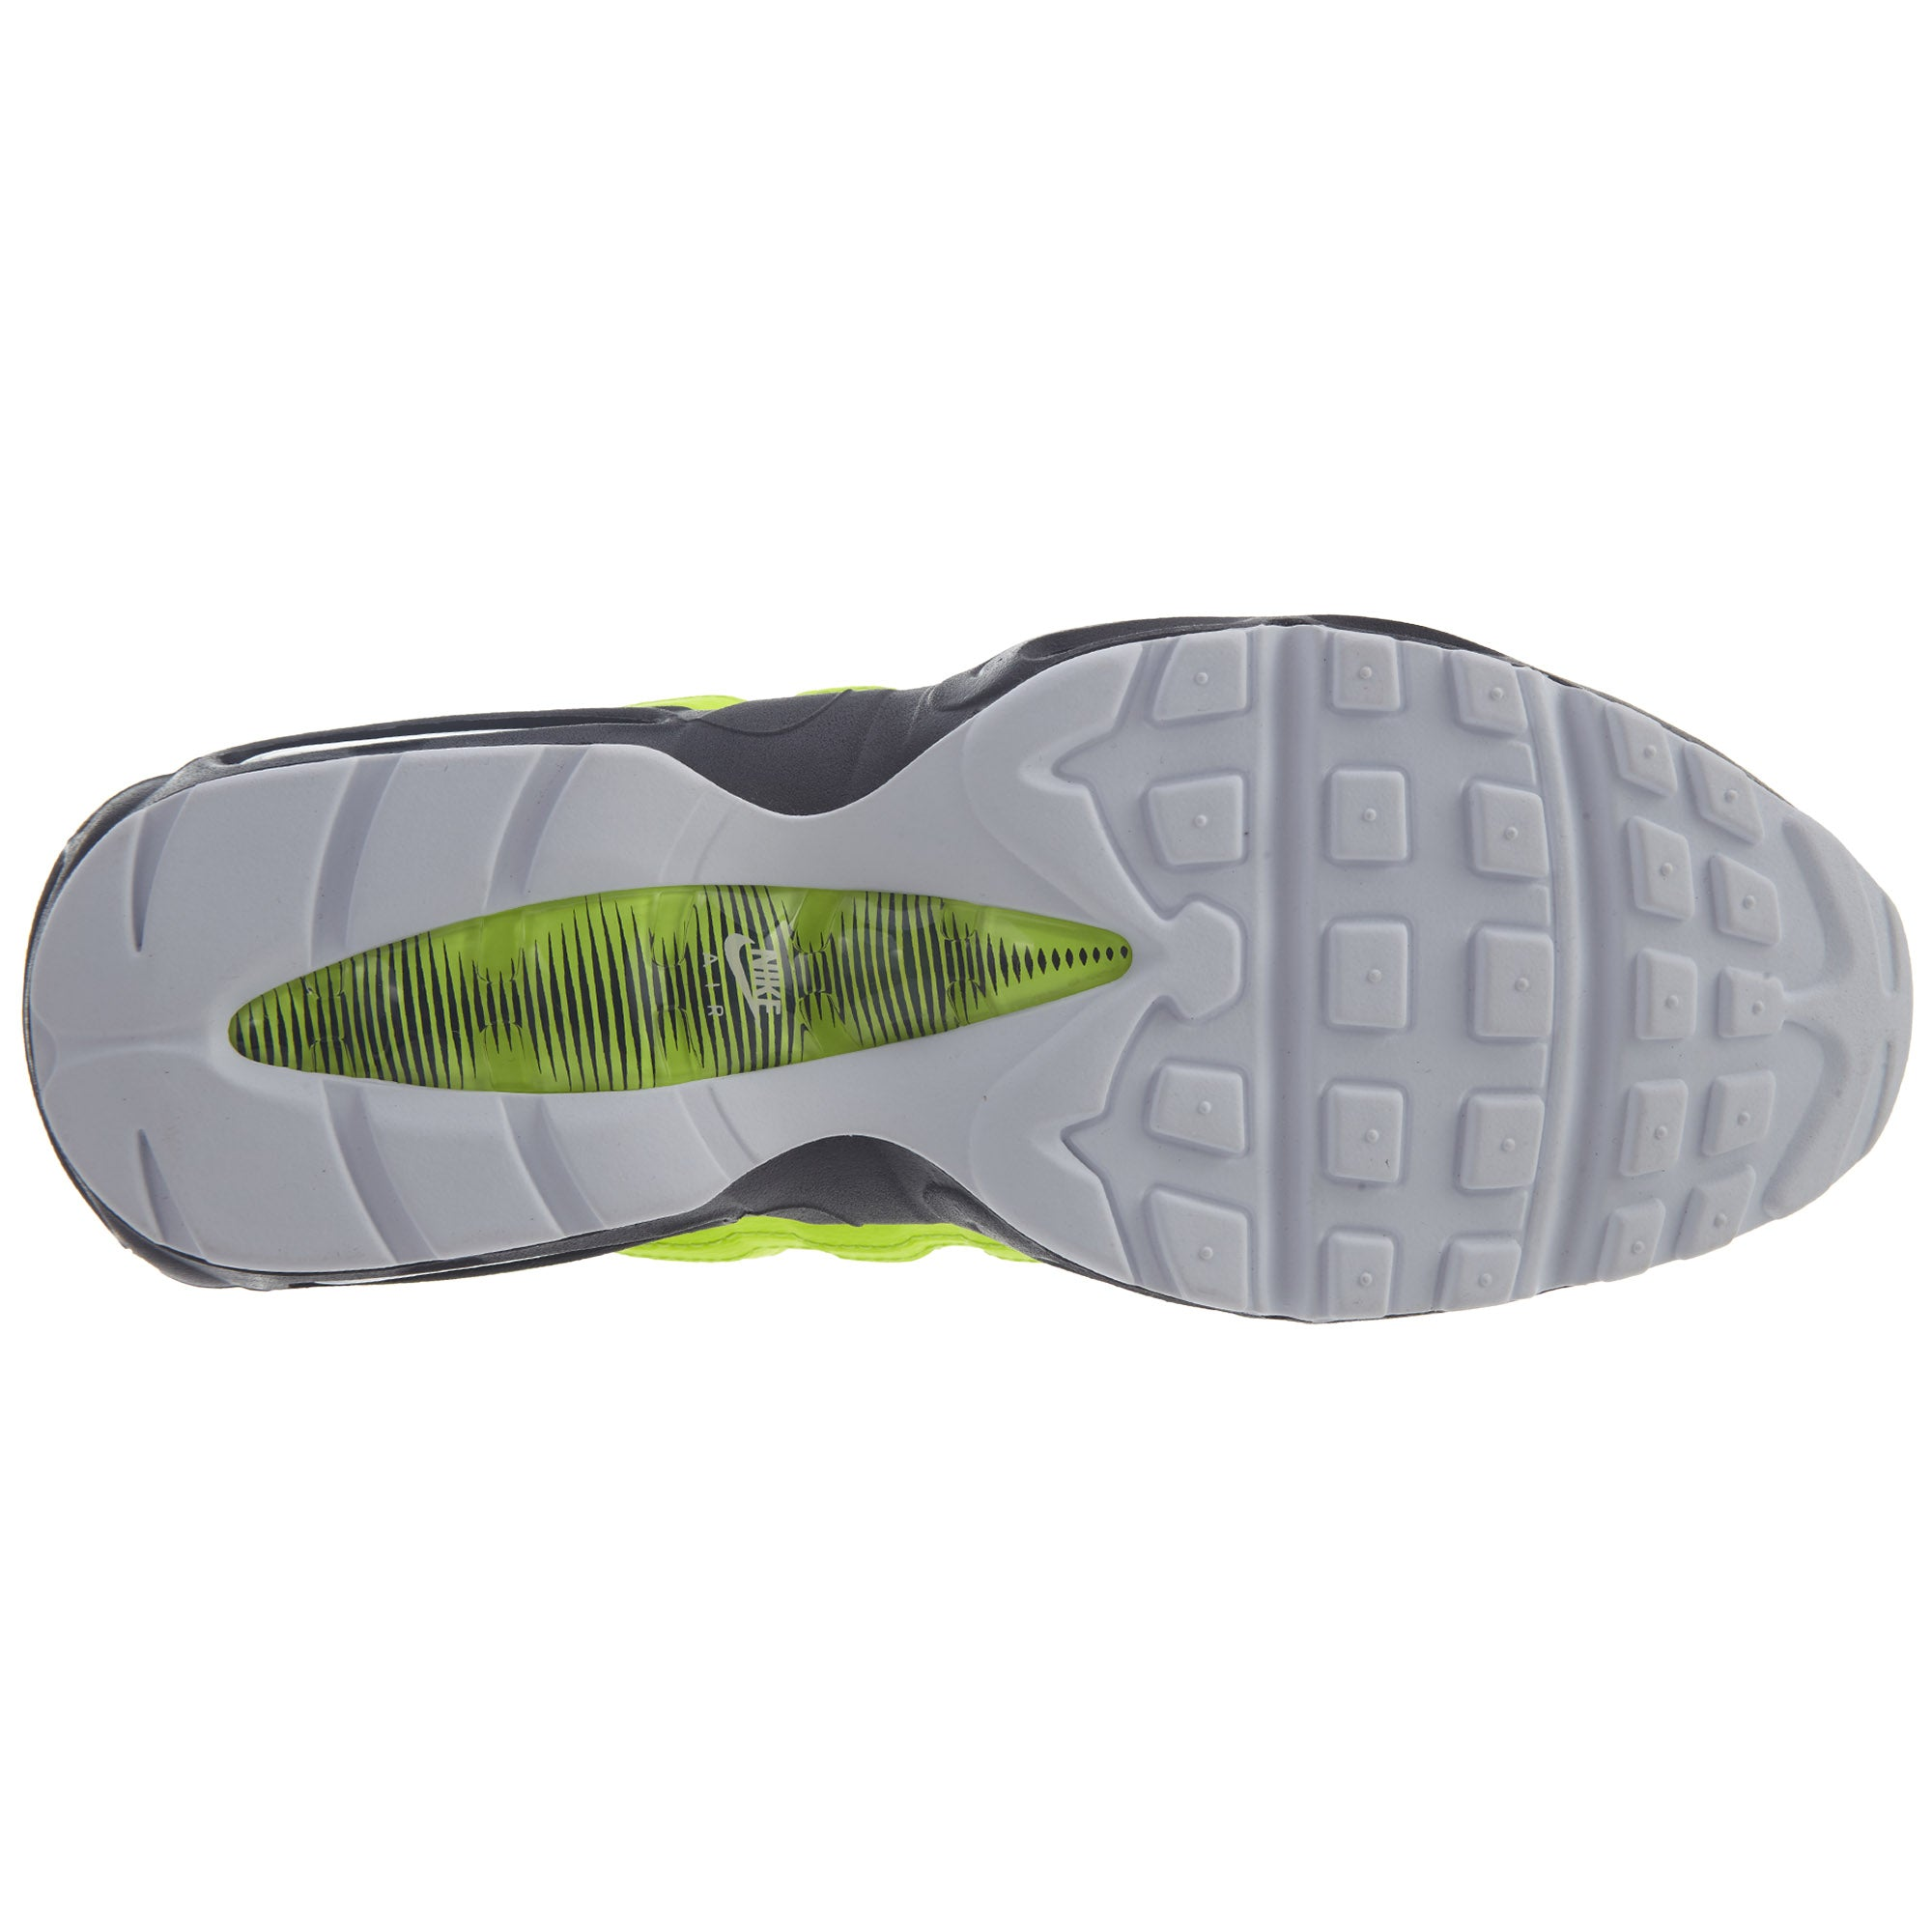 finest selection ddfb3 88d75 Nike Air Max 95 Prm Reverse Mens Style   538416-701